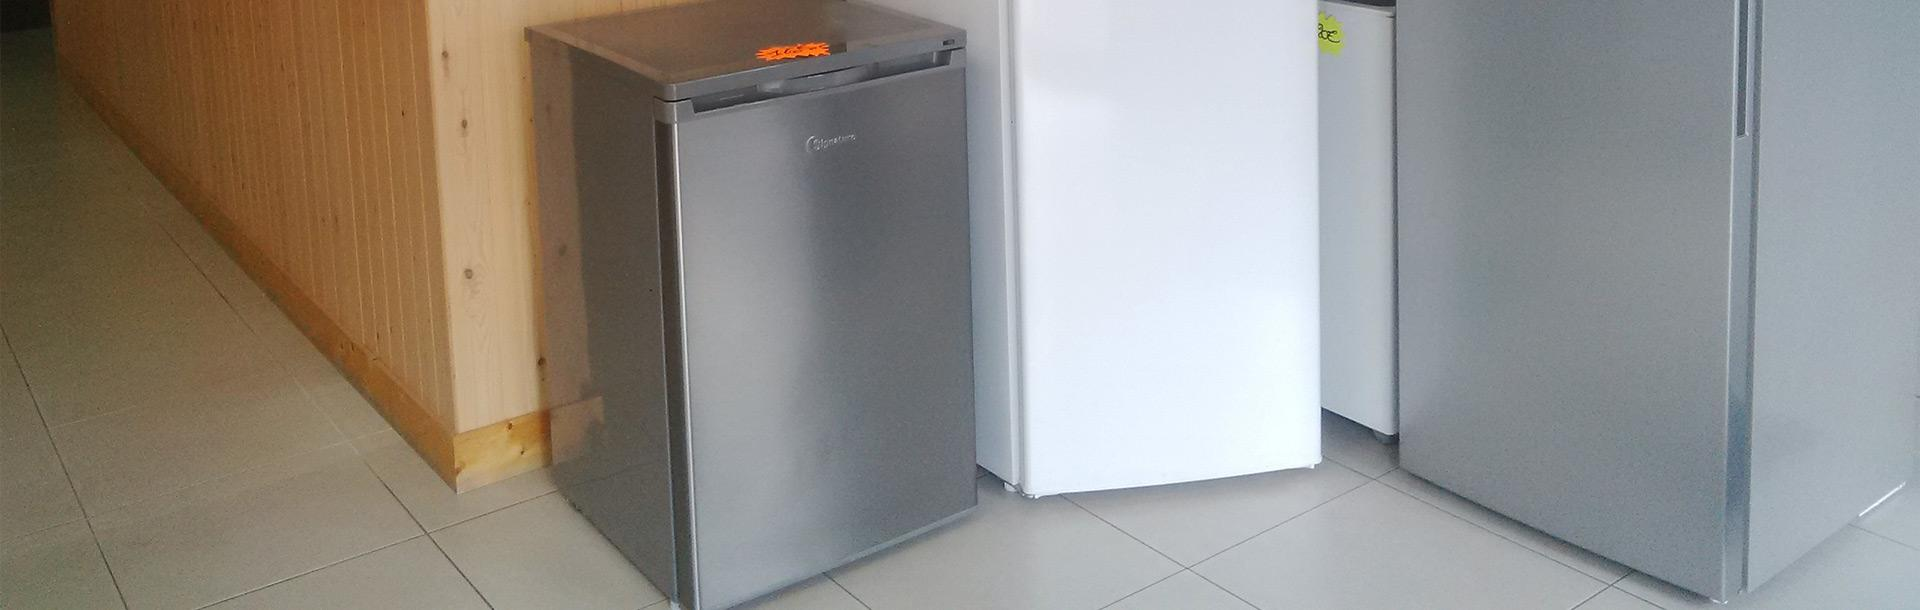 location refrigerateur 40